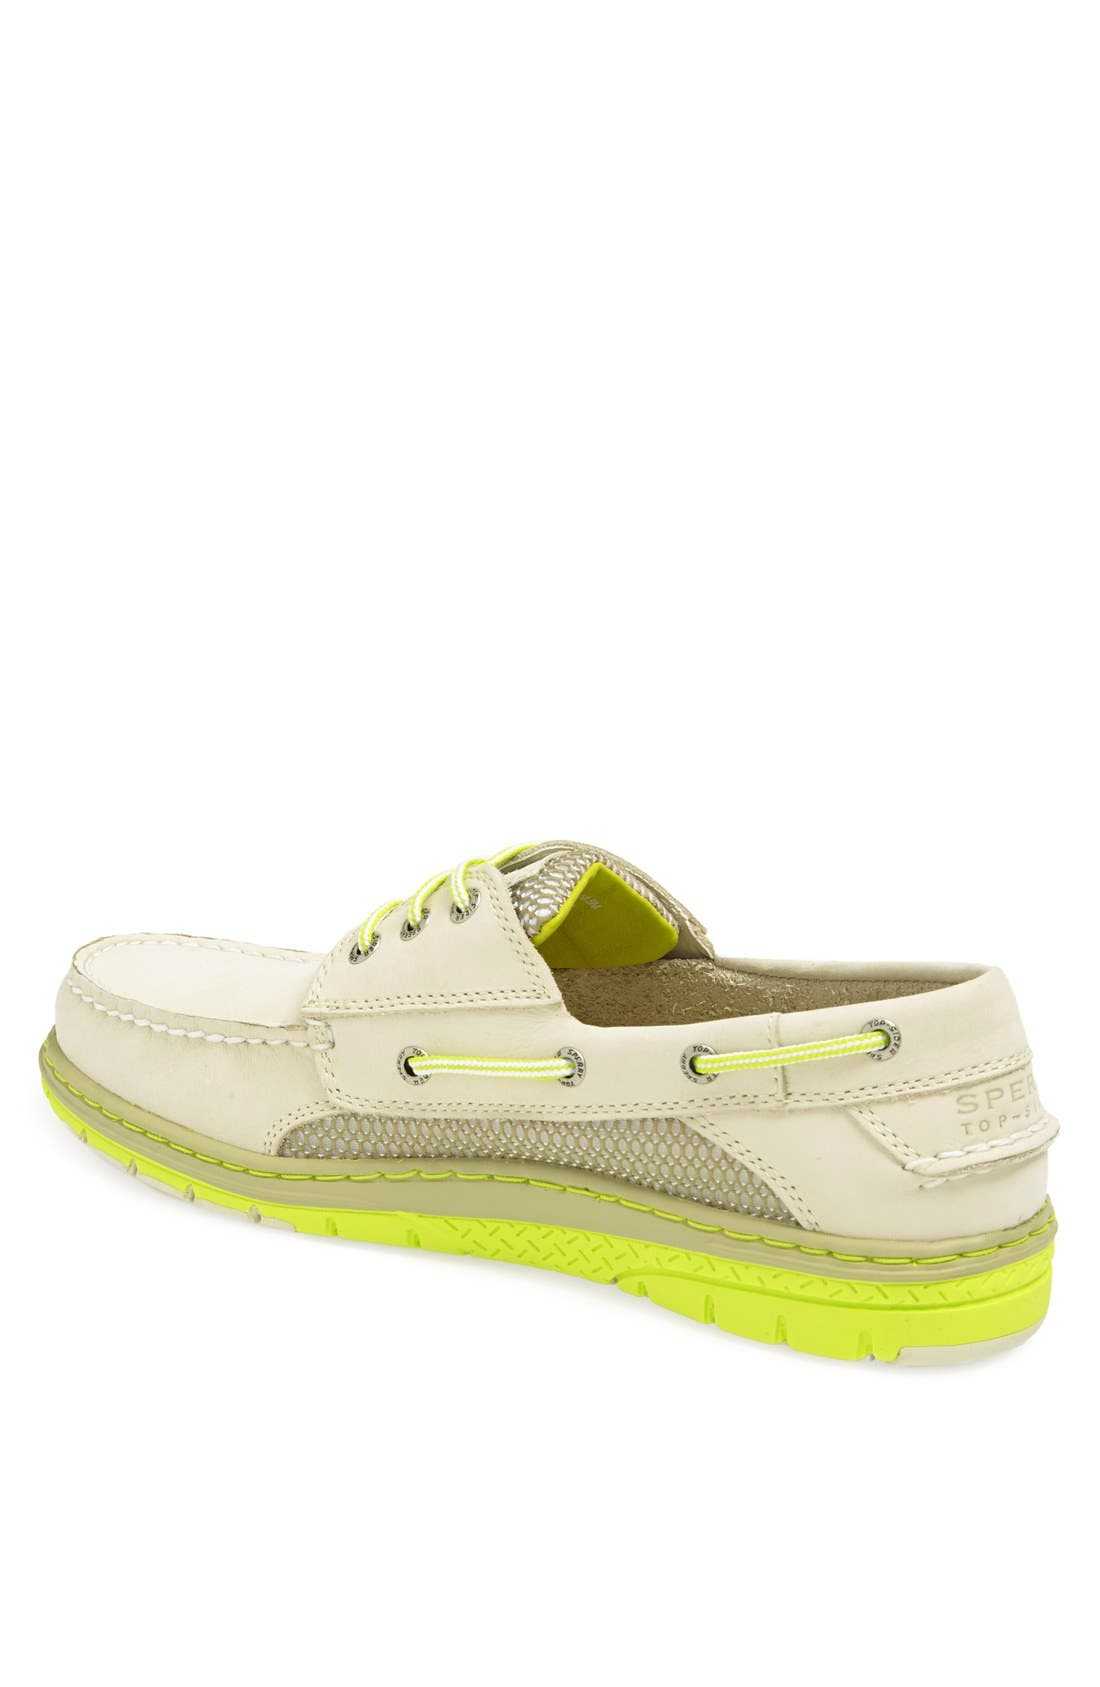 'Billfish Ultralite' Boat Shoe,                             Alternate thumbnail 68, color,